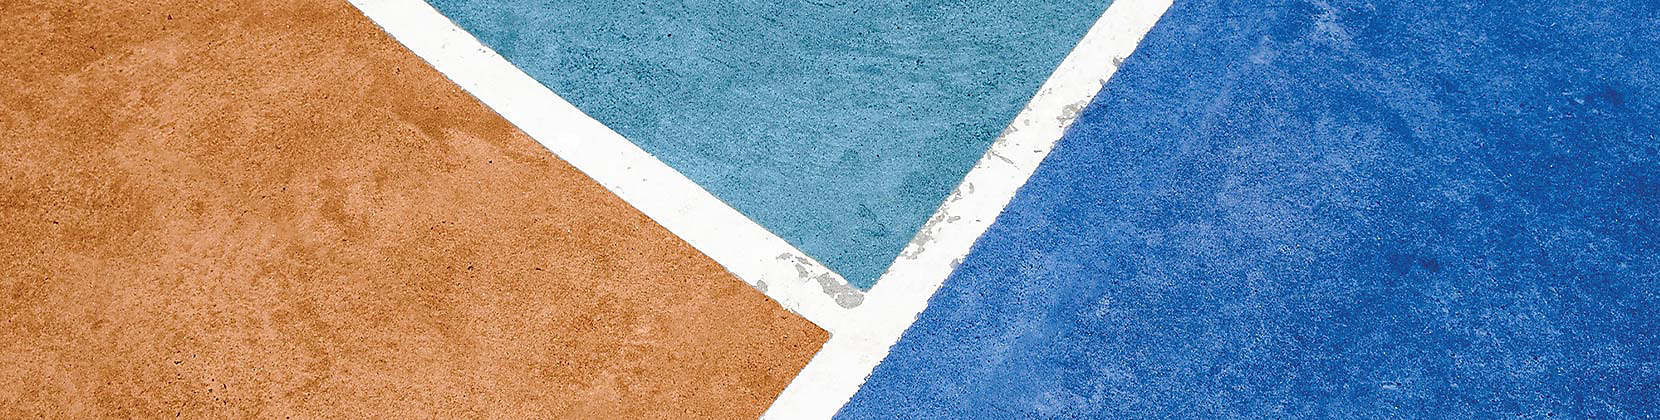 Image shows a close up texture of blue and orange colors.